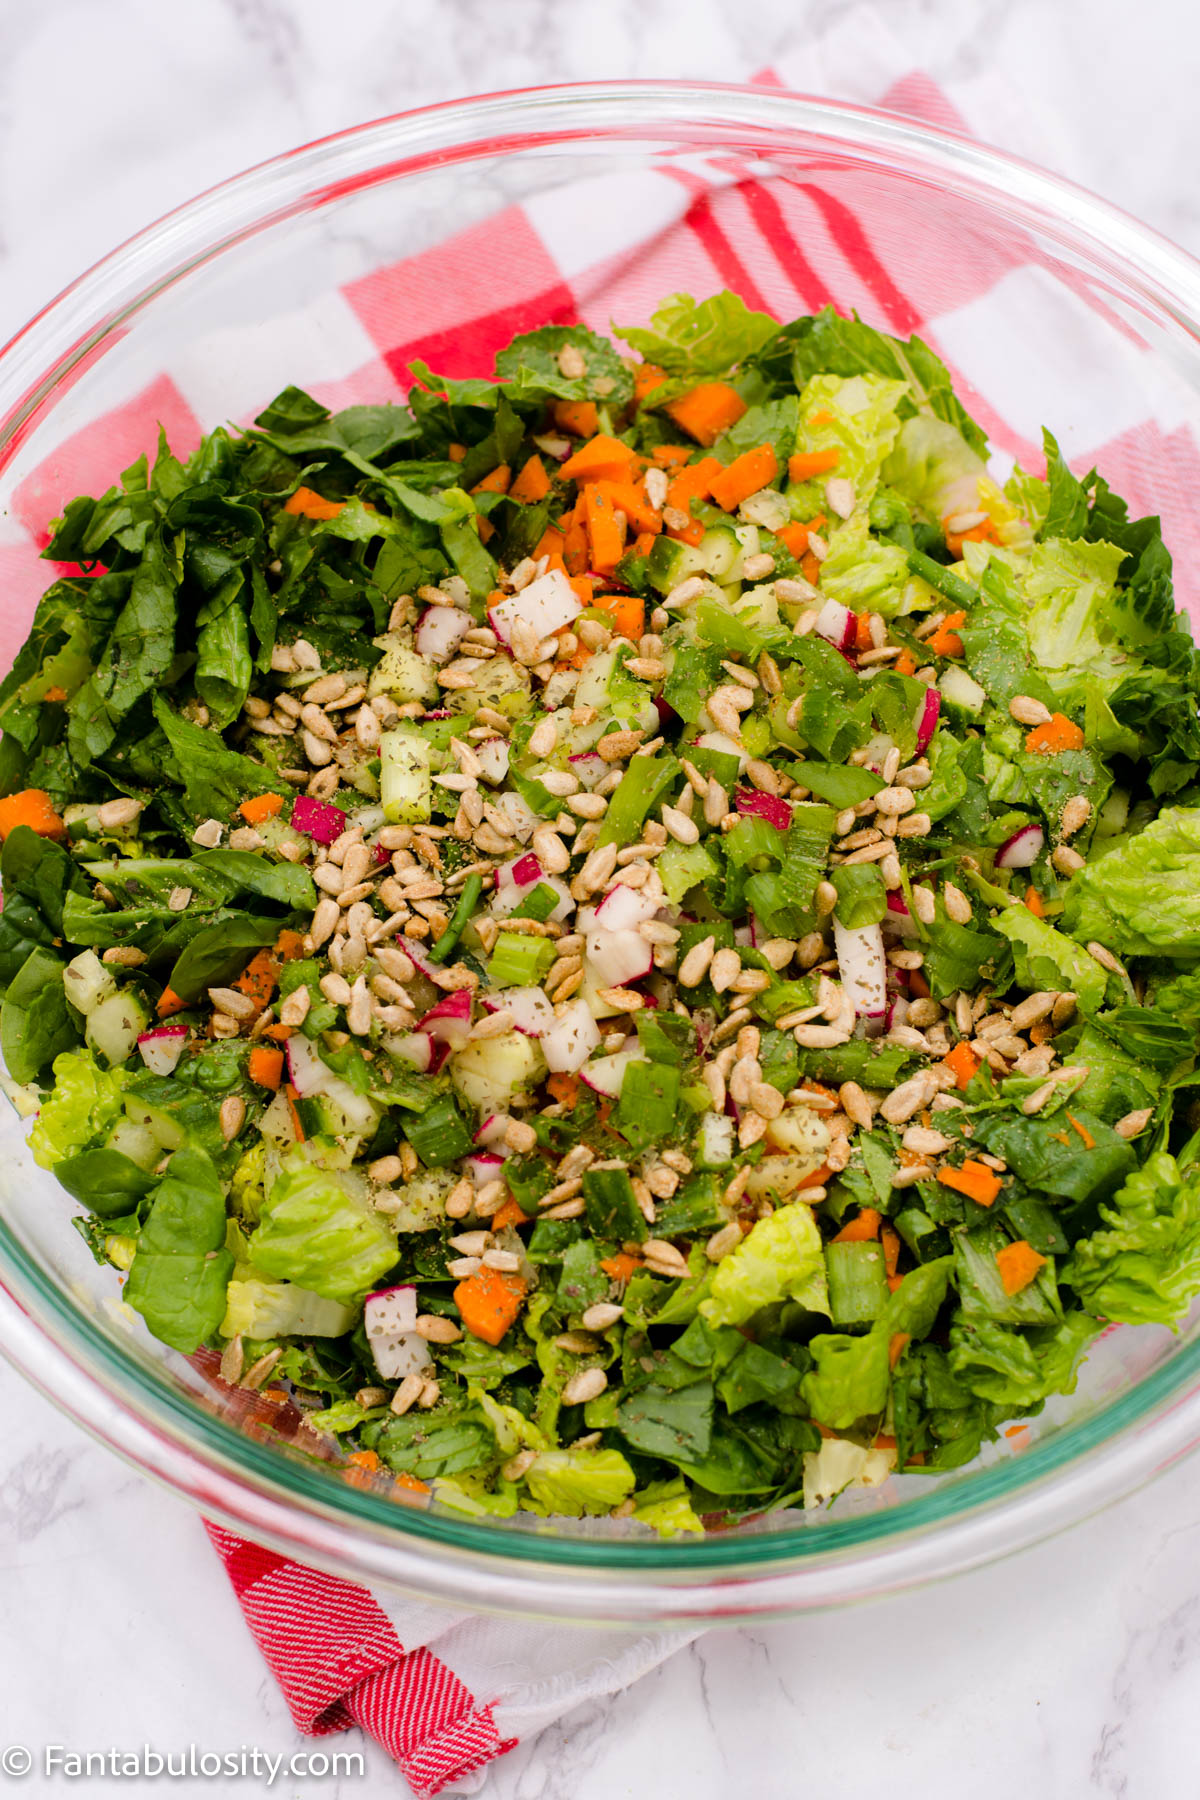 Side salad with toppings in clear bowl